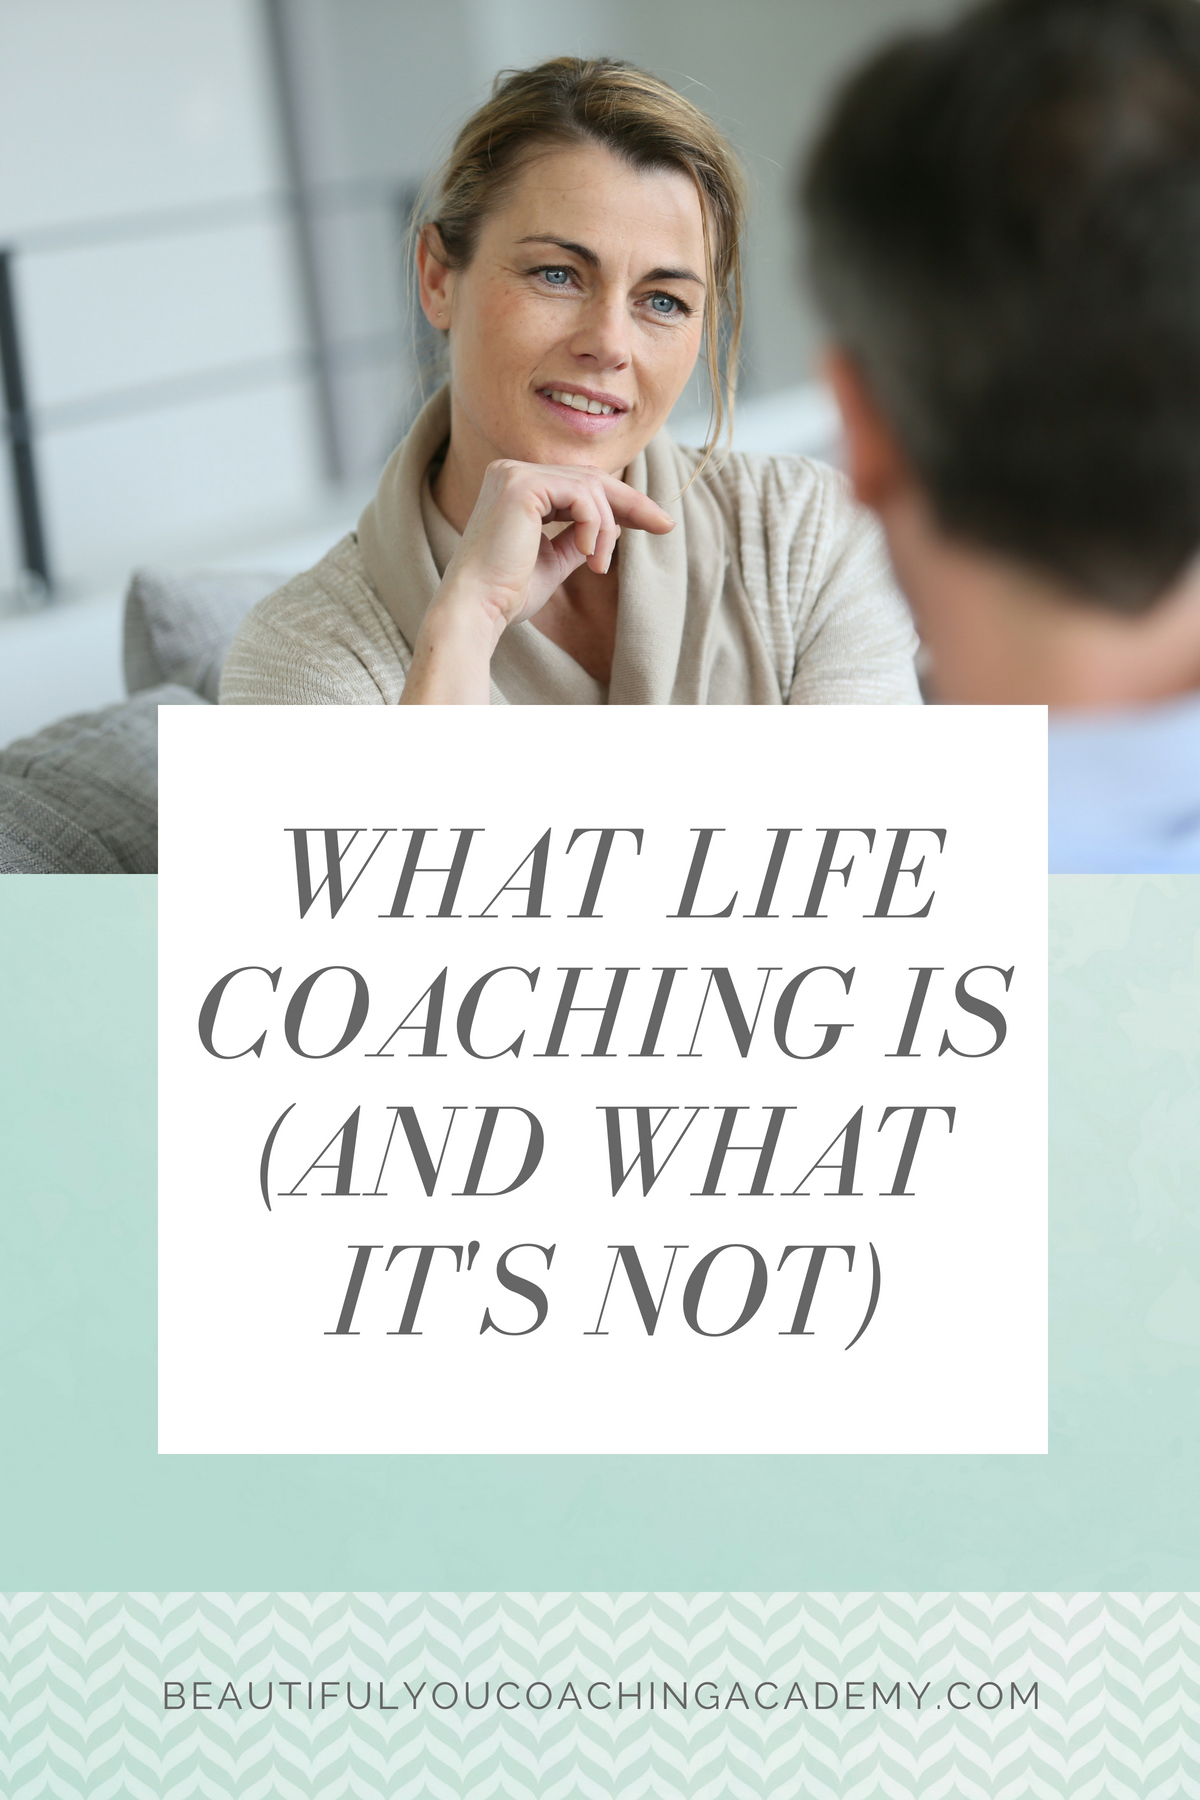 What Life Coaching Is (and what it's NOT)